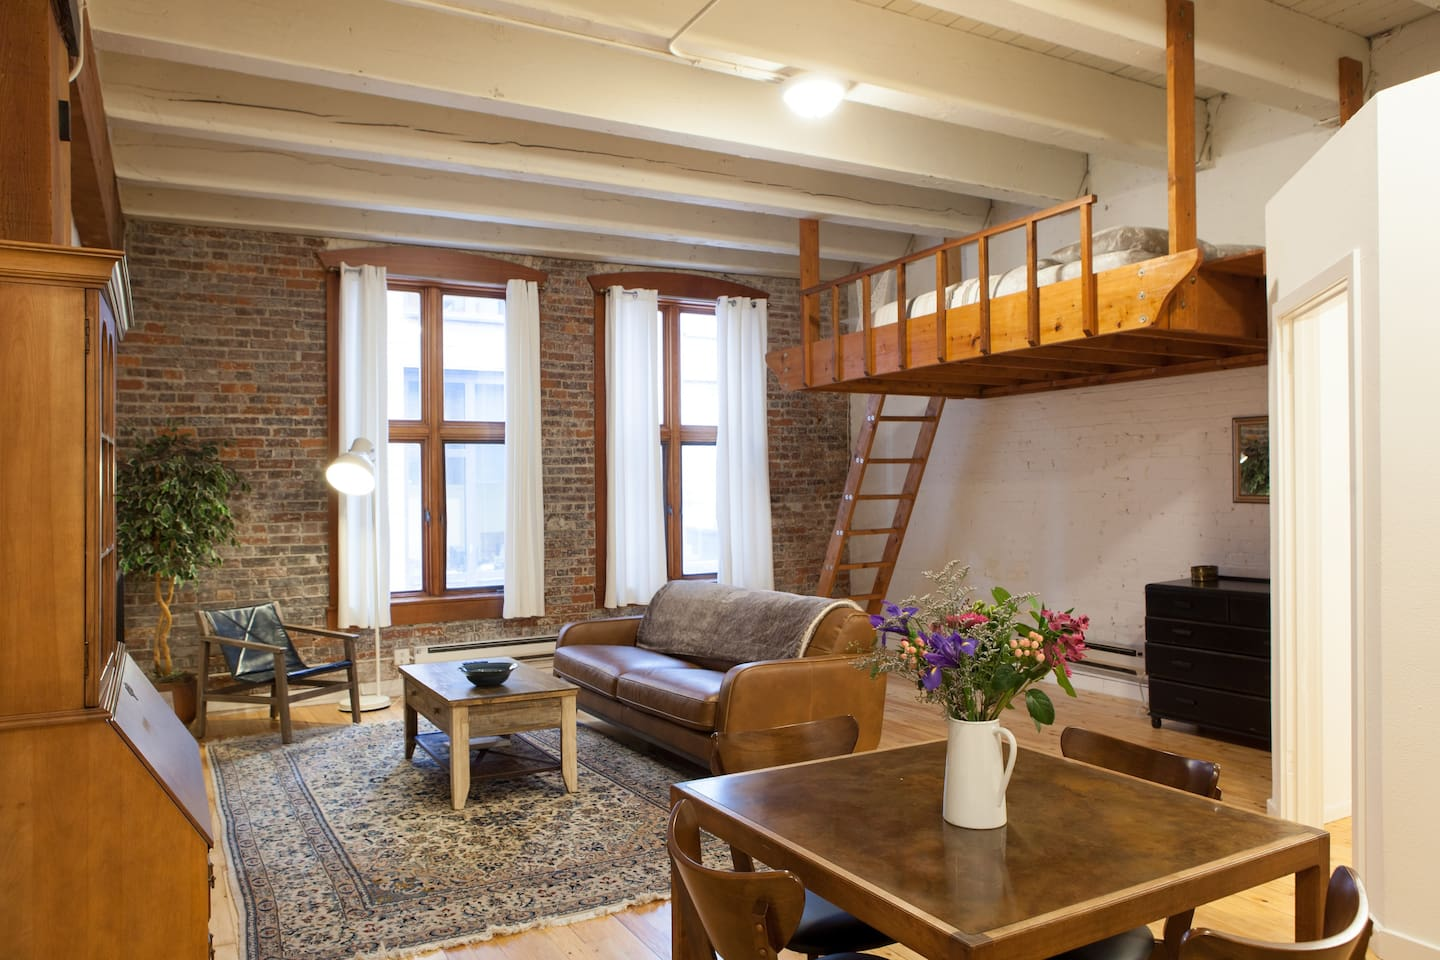 Gorgeous studio with high ceilings, original brick walls, leather sofa and chair, lofted custom-made queen bed, full kitchen, and spacious, well-appointed bathroom.